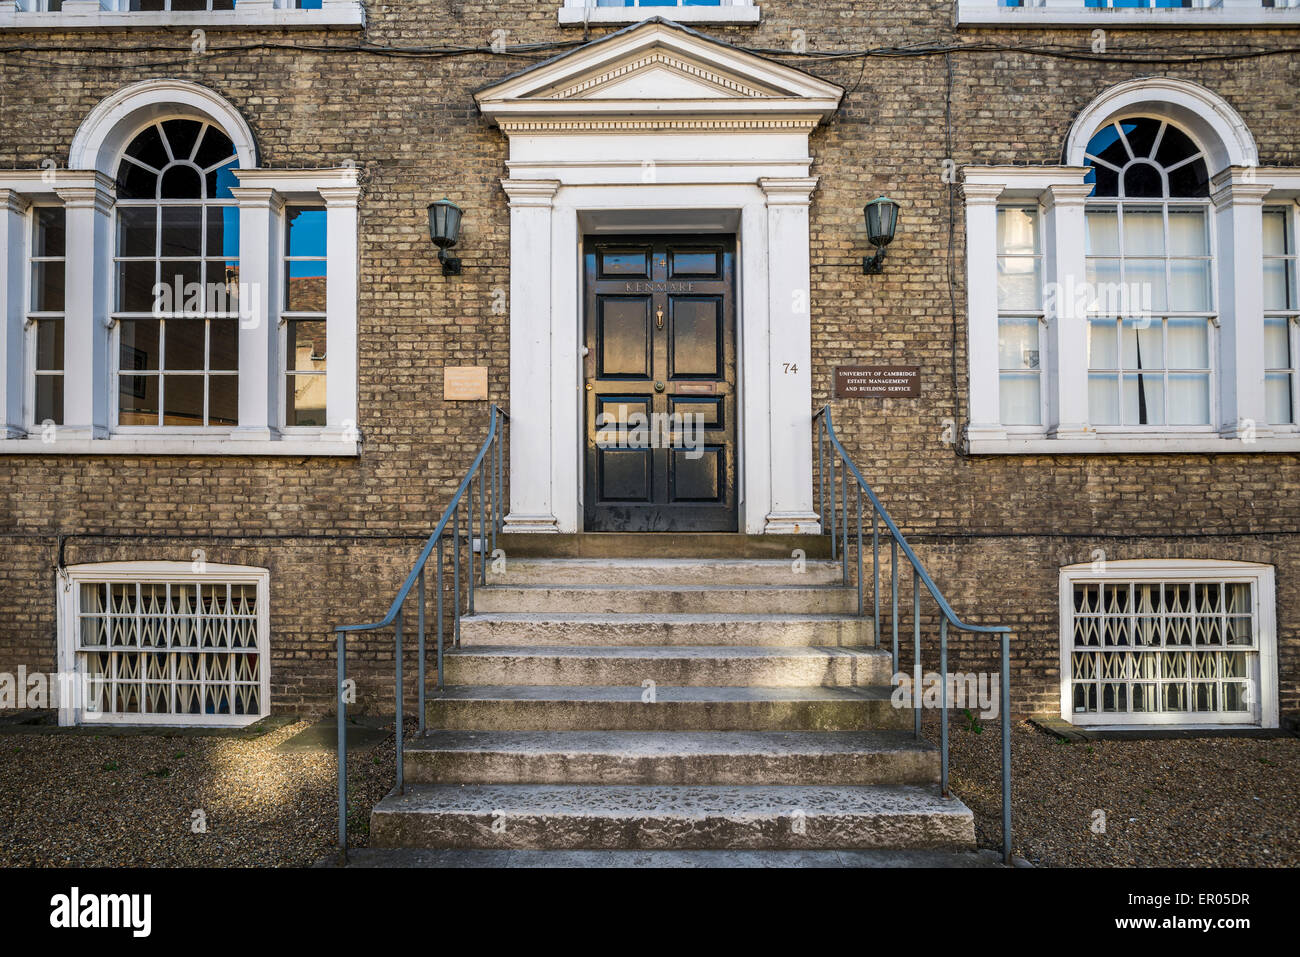 The front entrance to Kenmare, the office of the University of Cambridge Estate Management and Building Service - Stock Image